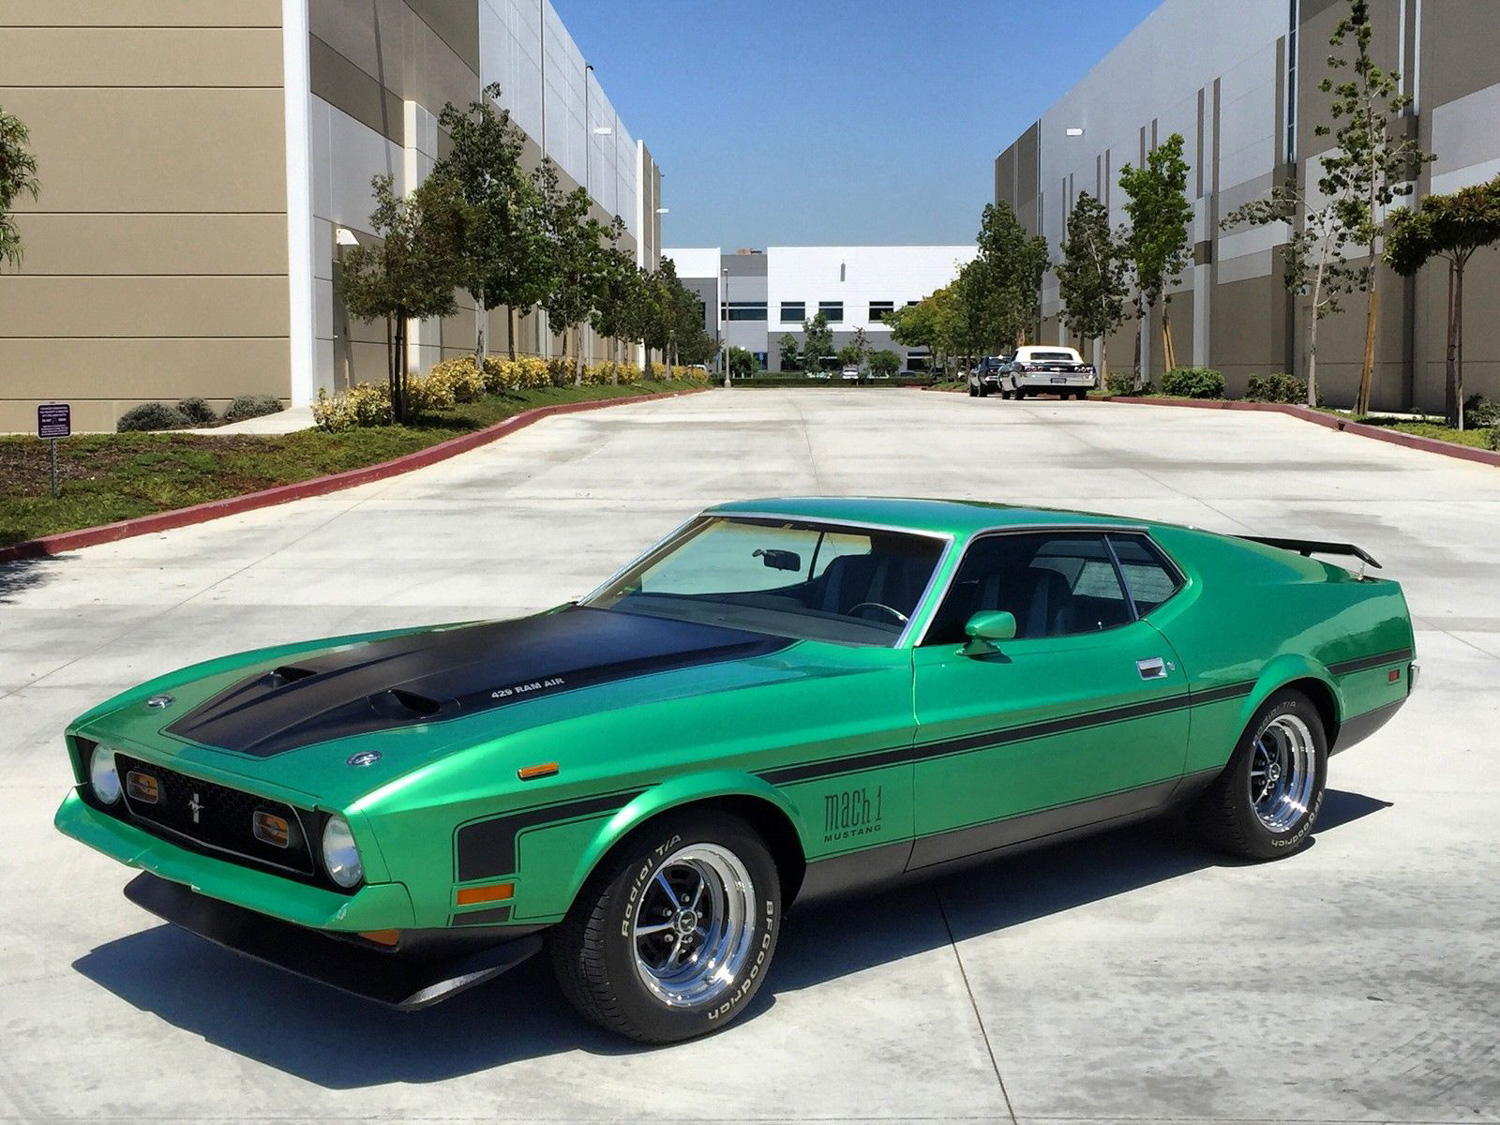 1973 Ford Mustang green mach 1